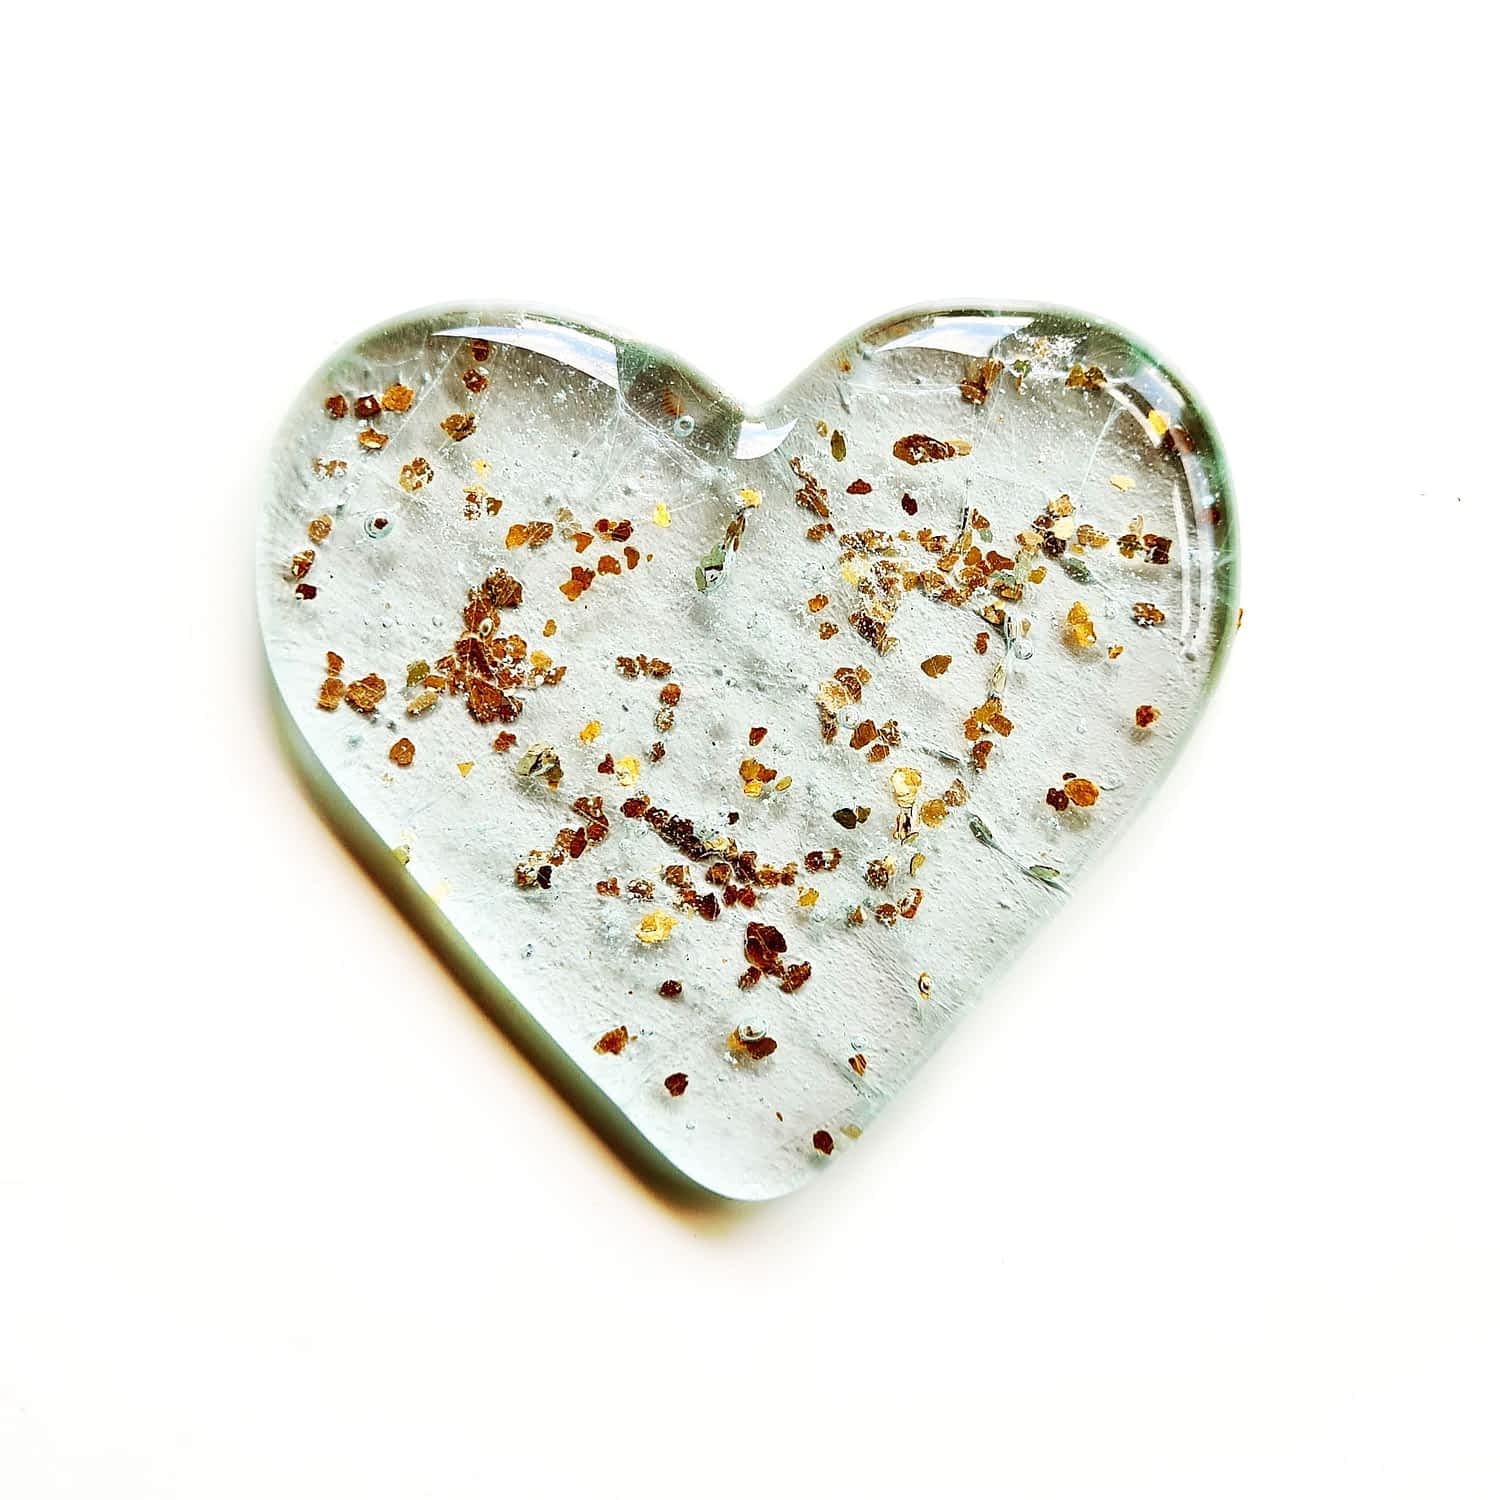 Pet Cremation Ashes fused inside a clear heart with a sprinkling of gold glitter, on a white background.